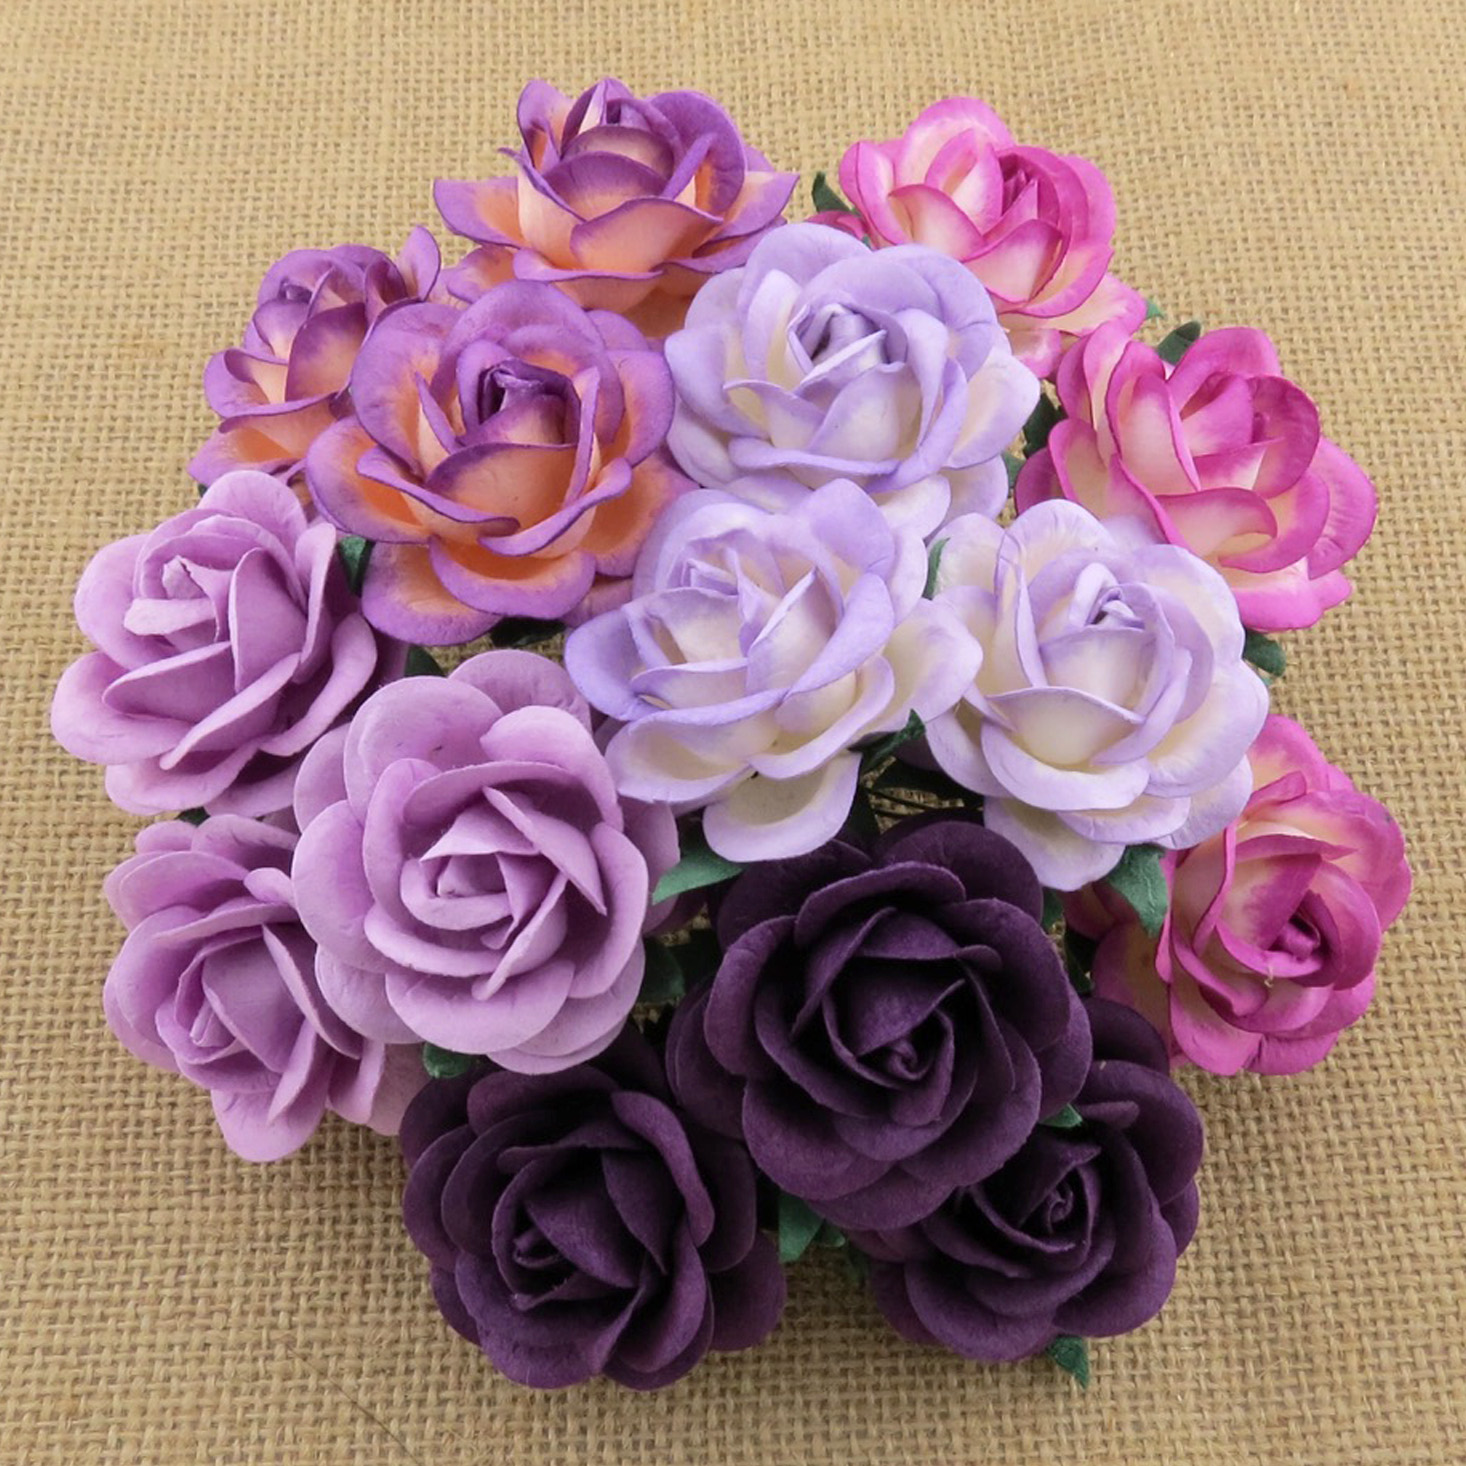 50 MIXED PURPLE/LILAC MULBERRY PAPER TRELLIS ROSES - 5 COLOR